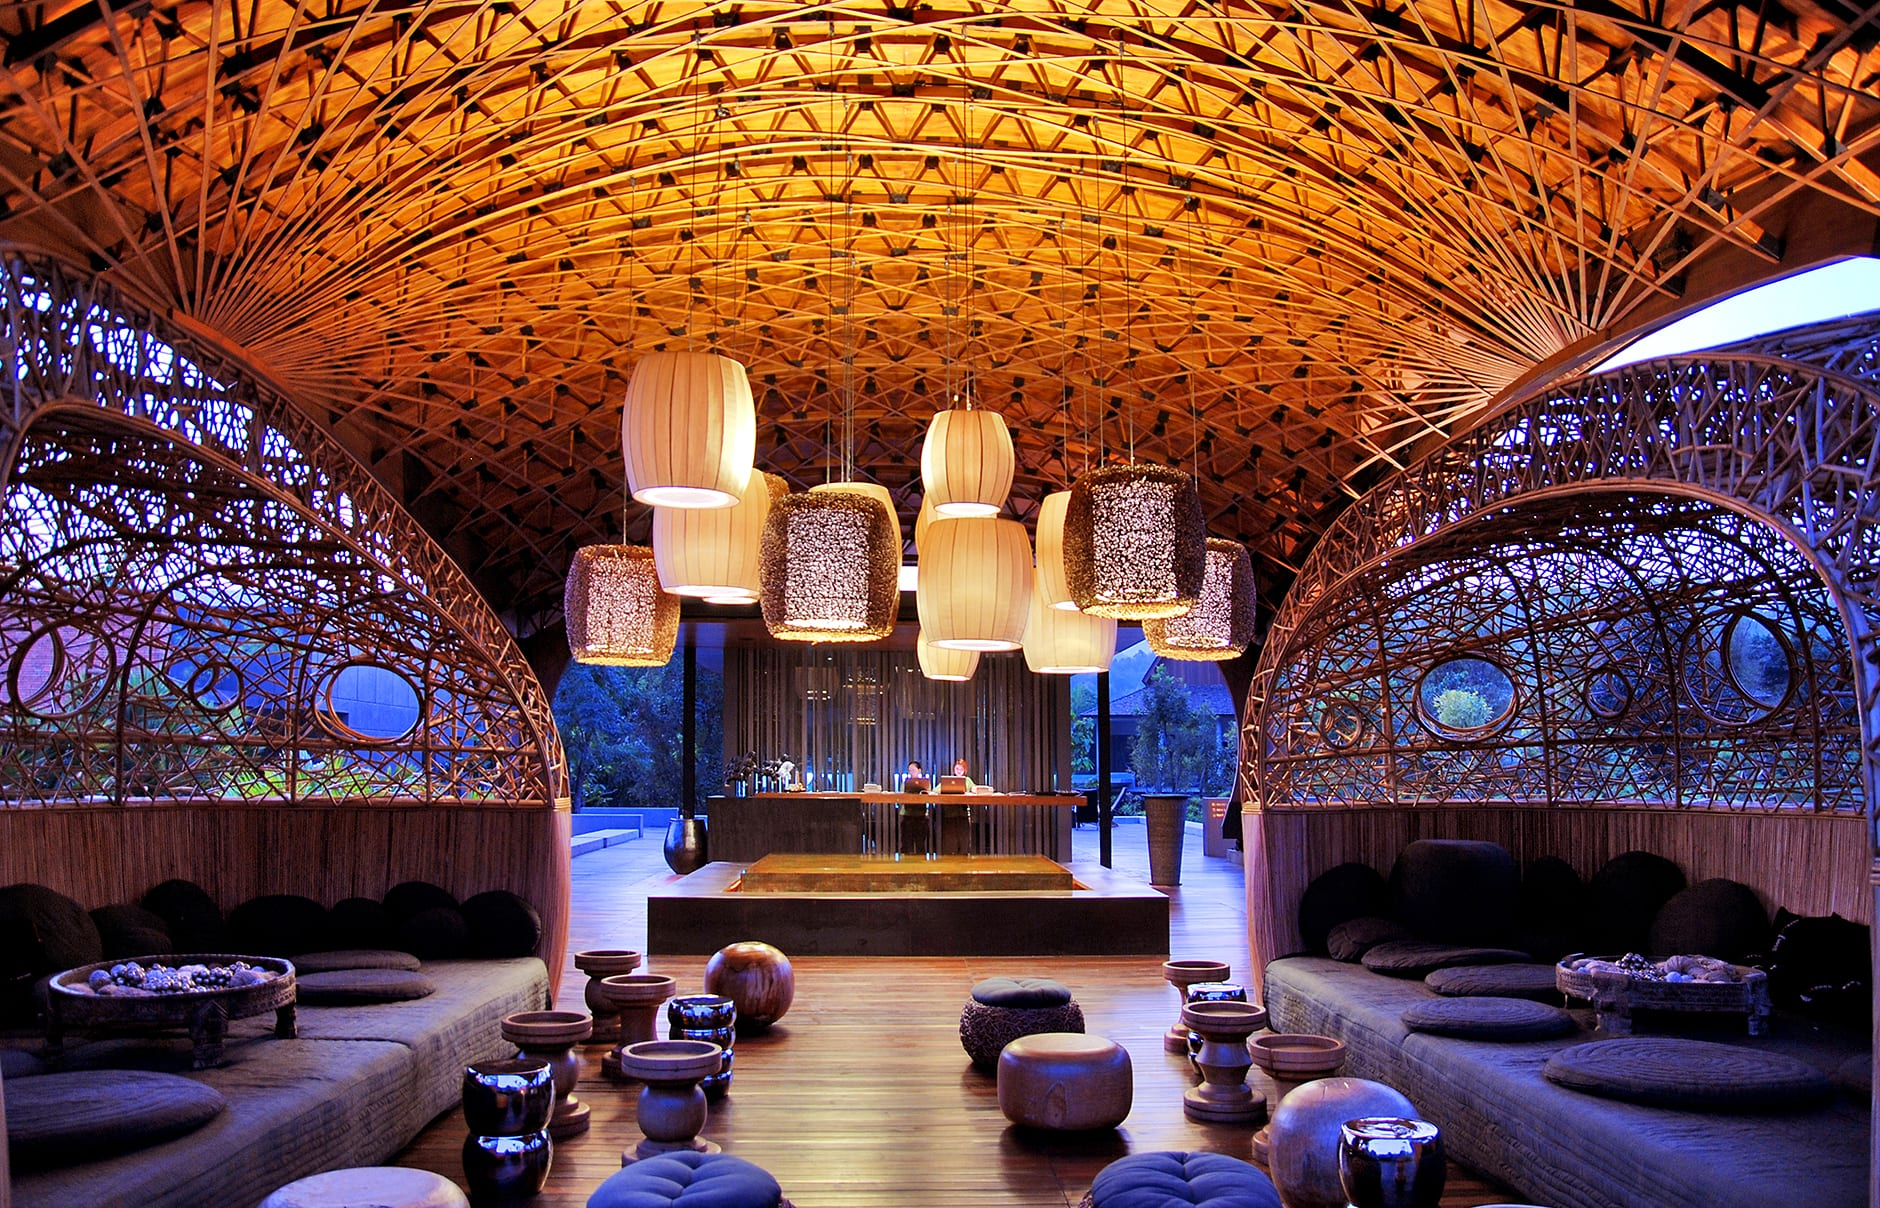 Lobby pavilion. Veranda Chiang Mai - The High Resort. Thailand. © Veranda Chiang Mai - The High Resort